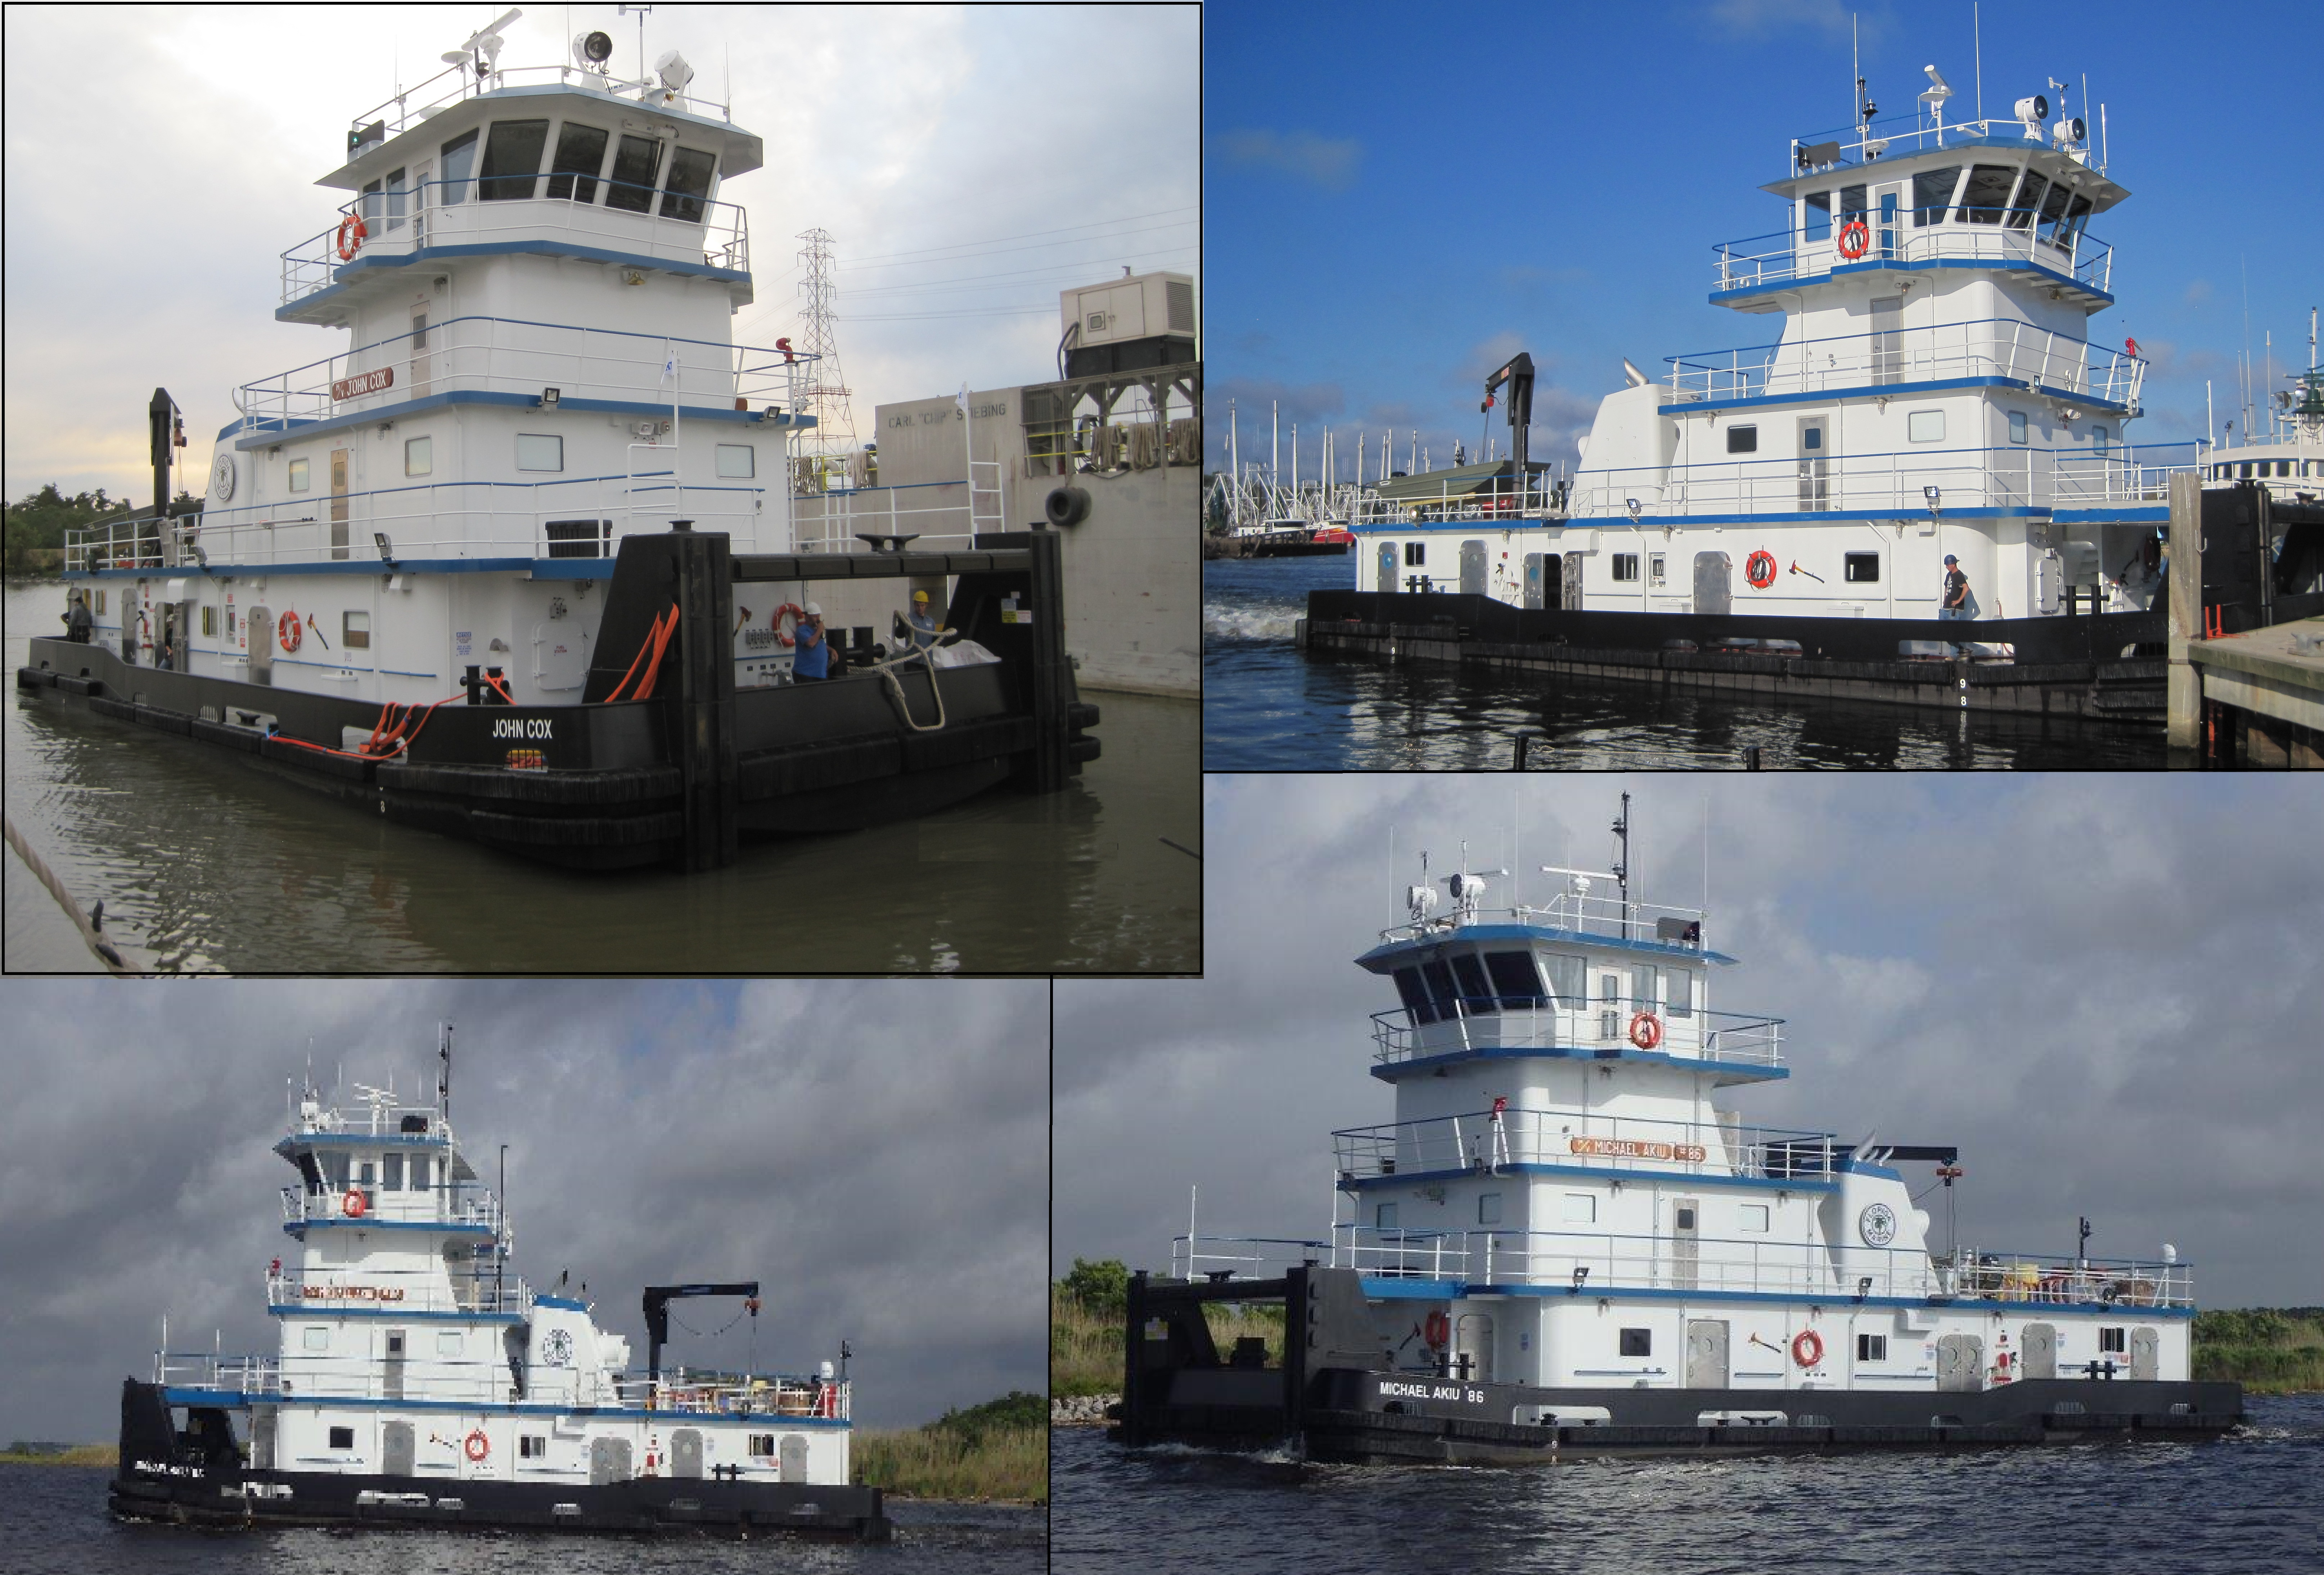 80' FMT Tow Boats